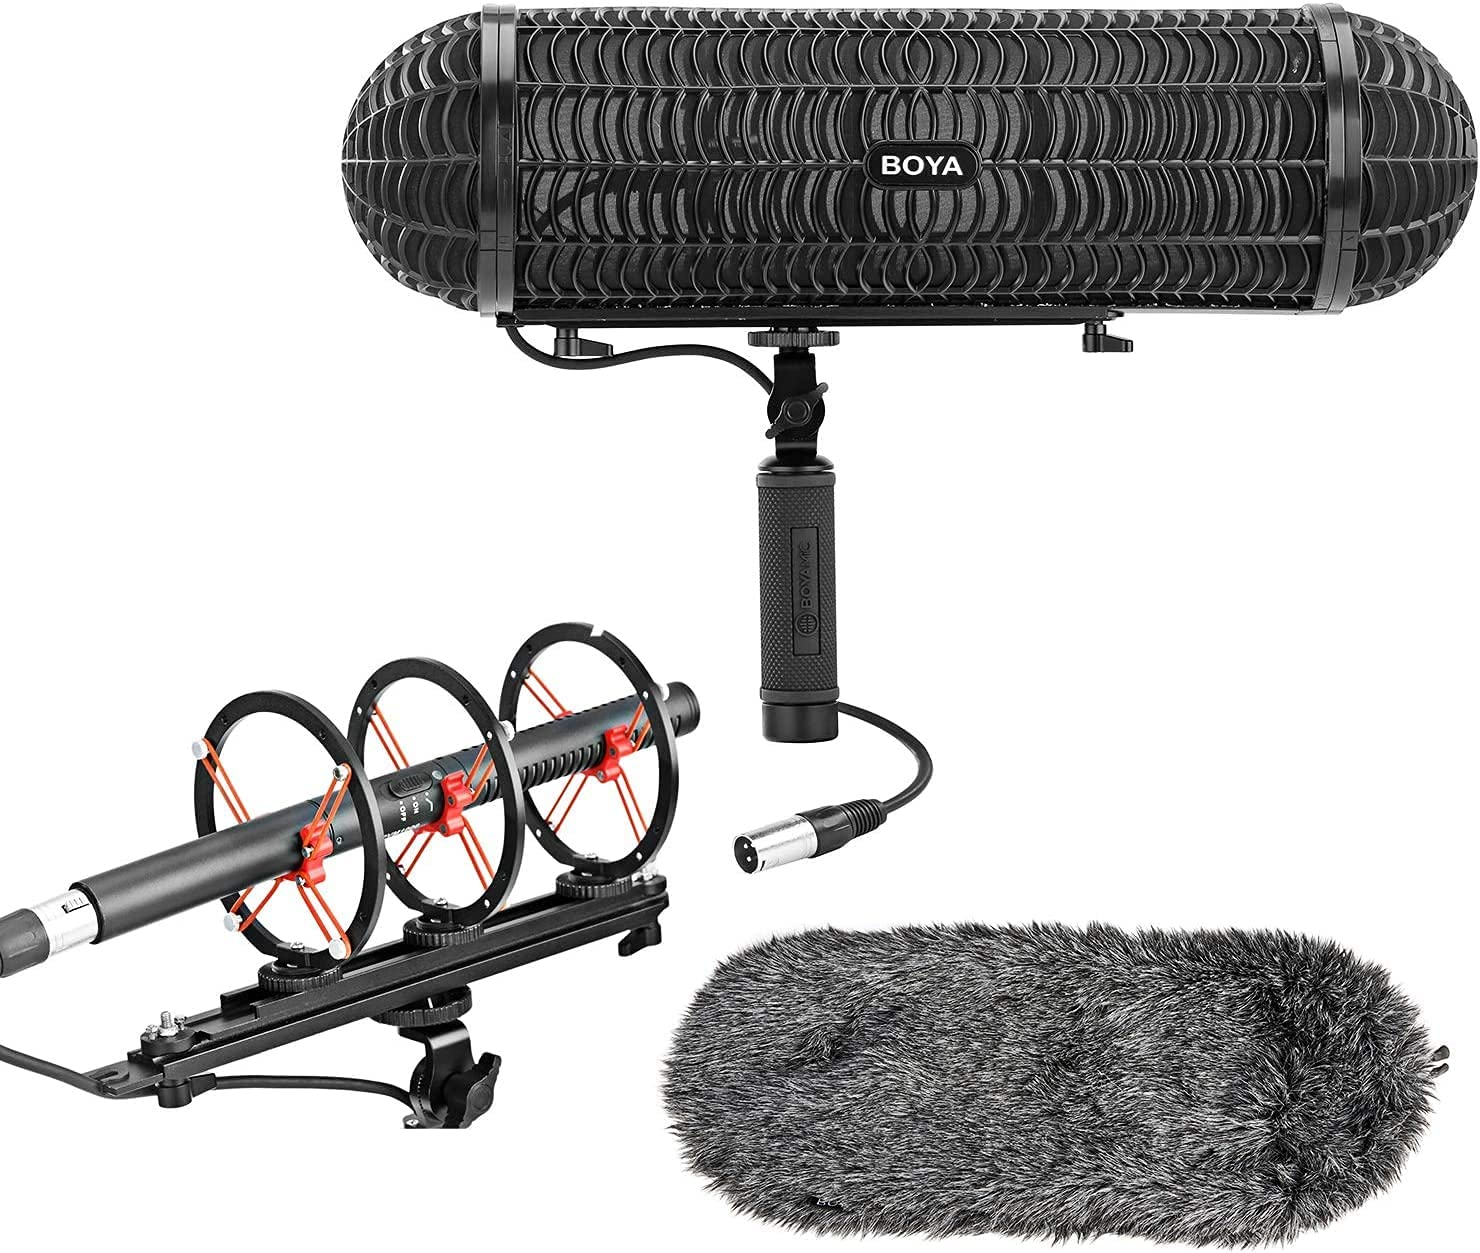 BOYA BY-WS1000 Blimp Microphone Windshield Mount Max 77% OFF 2021 autumn and winter new P and Vibration